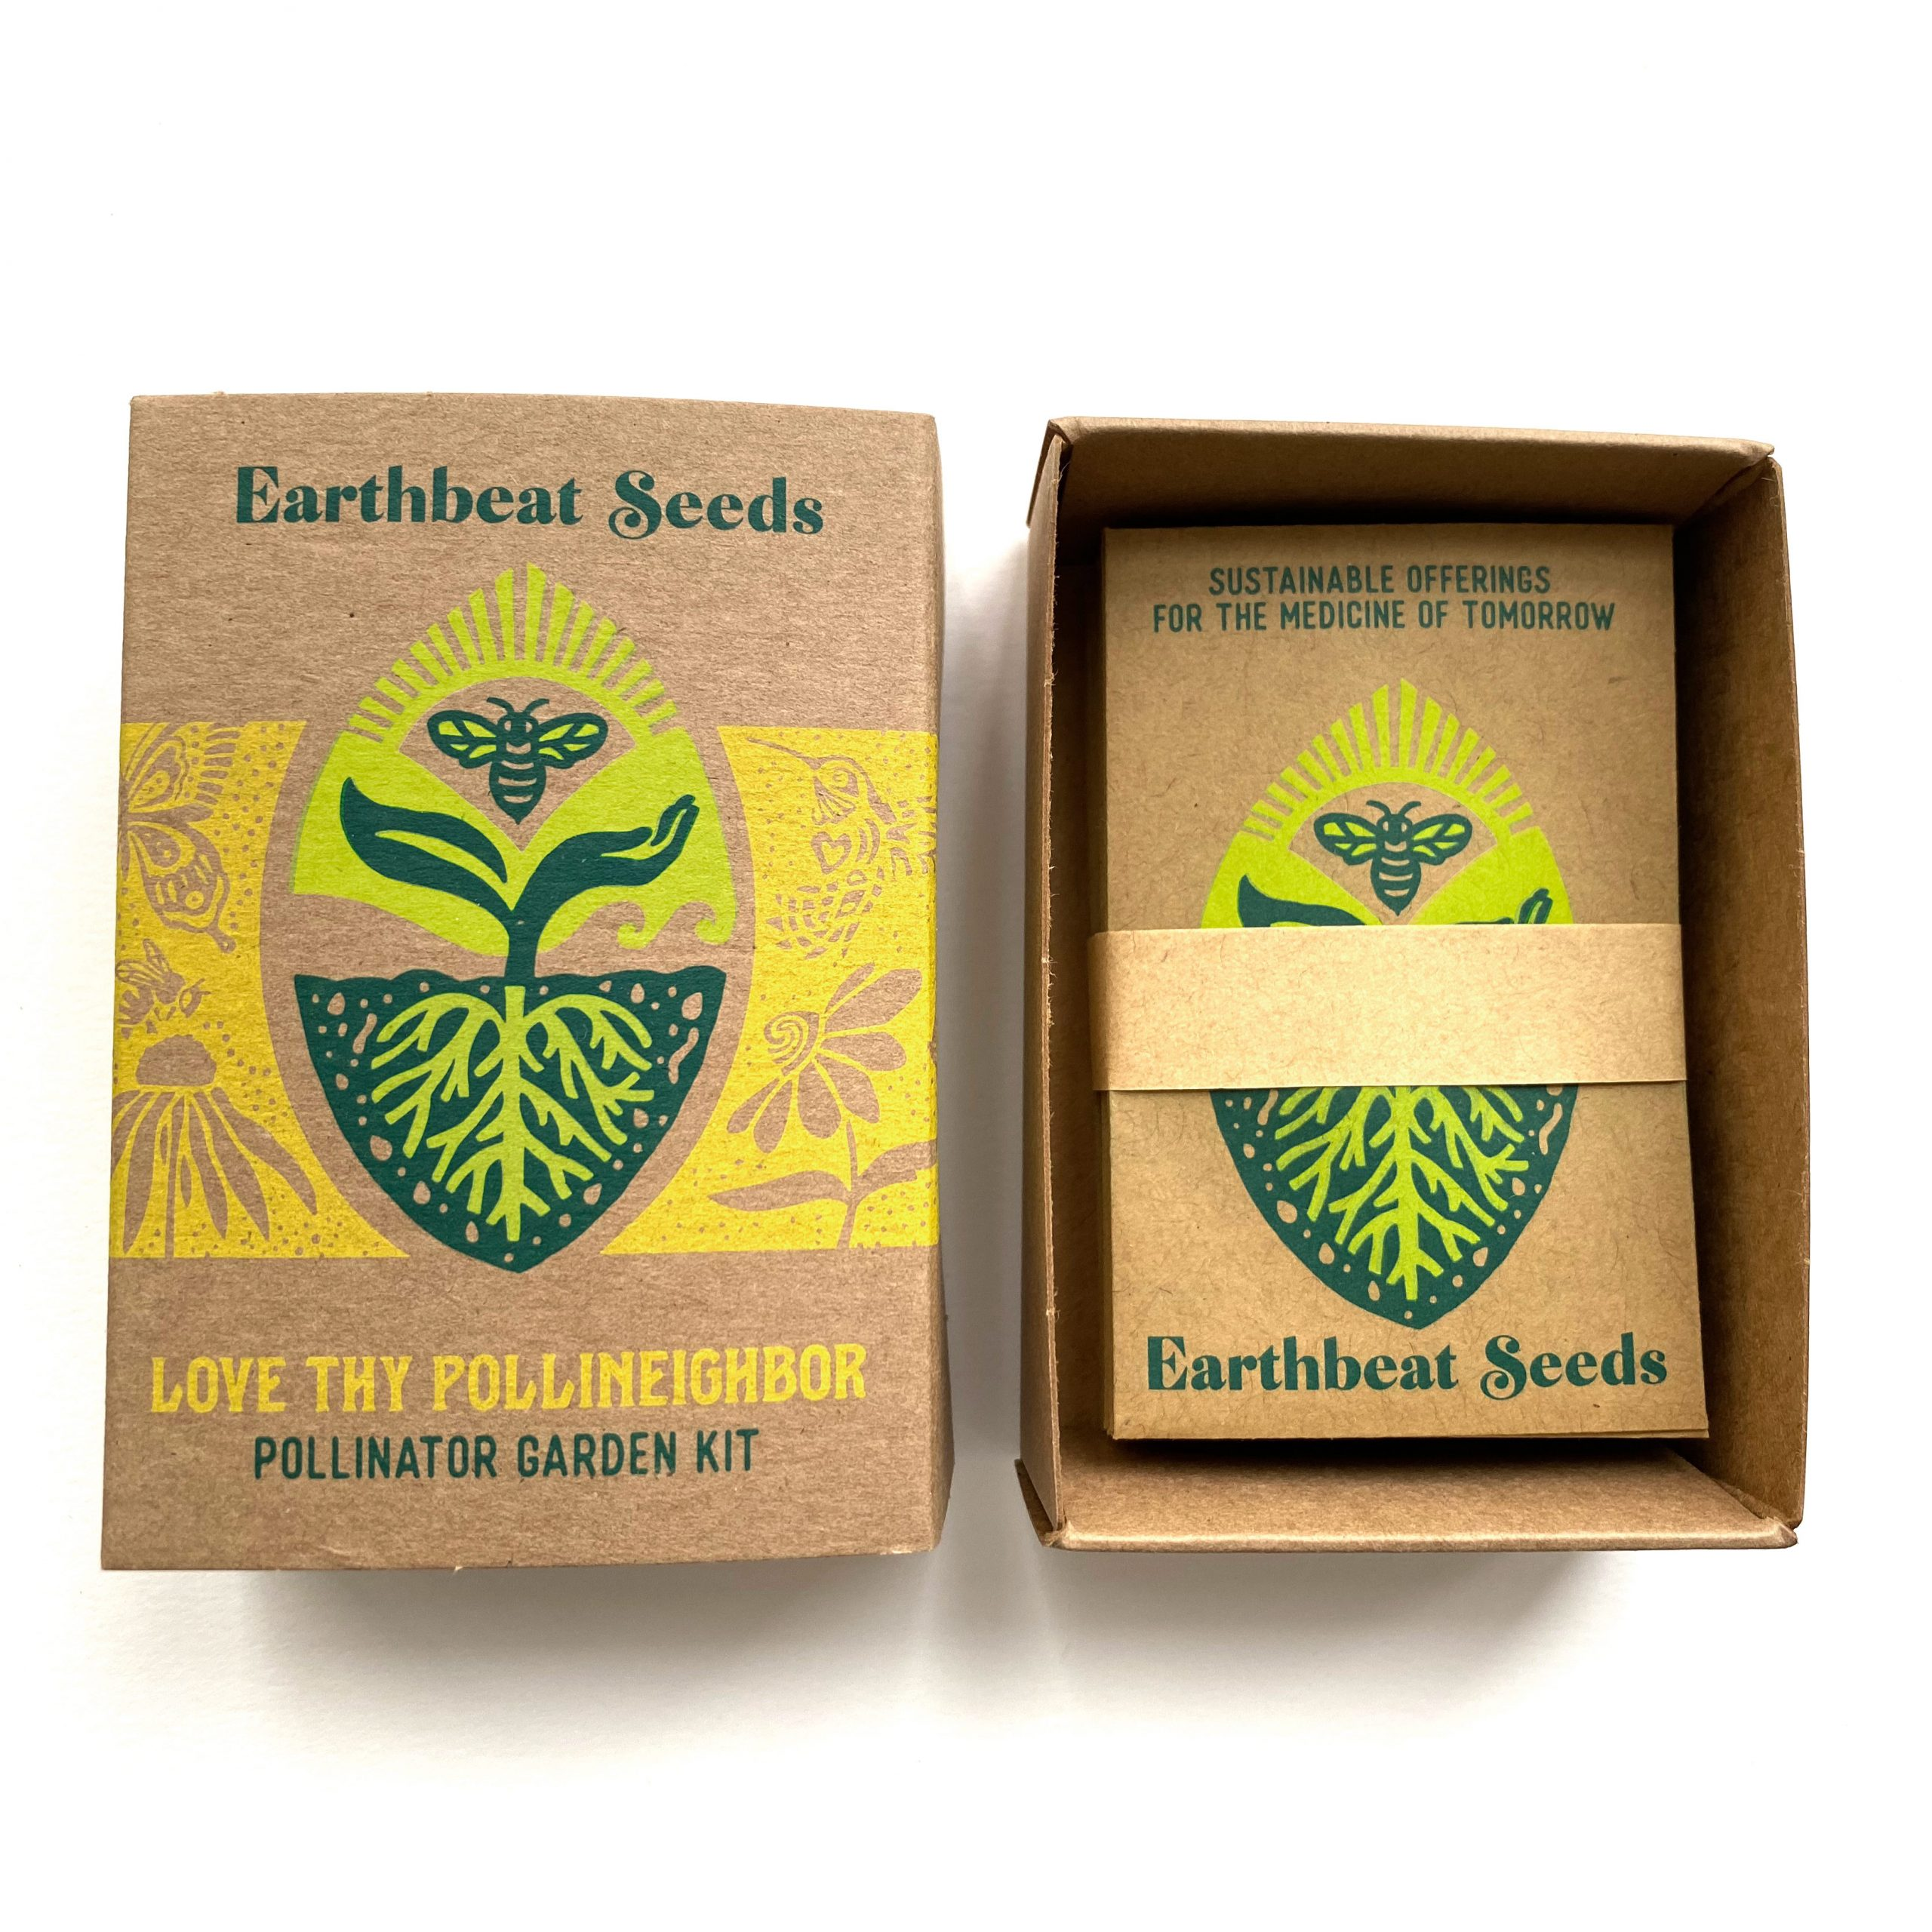 EARTHBEAT SEEDS